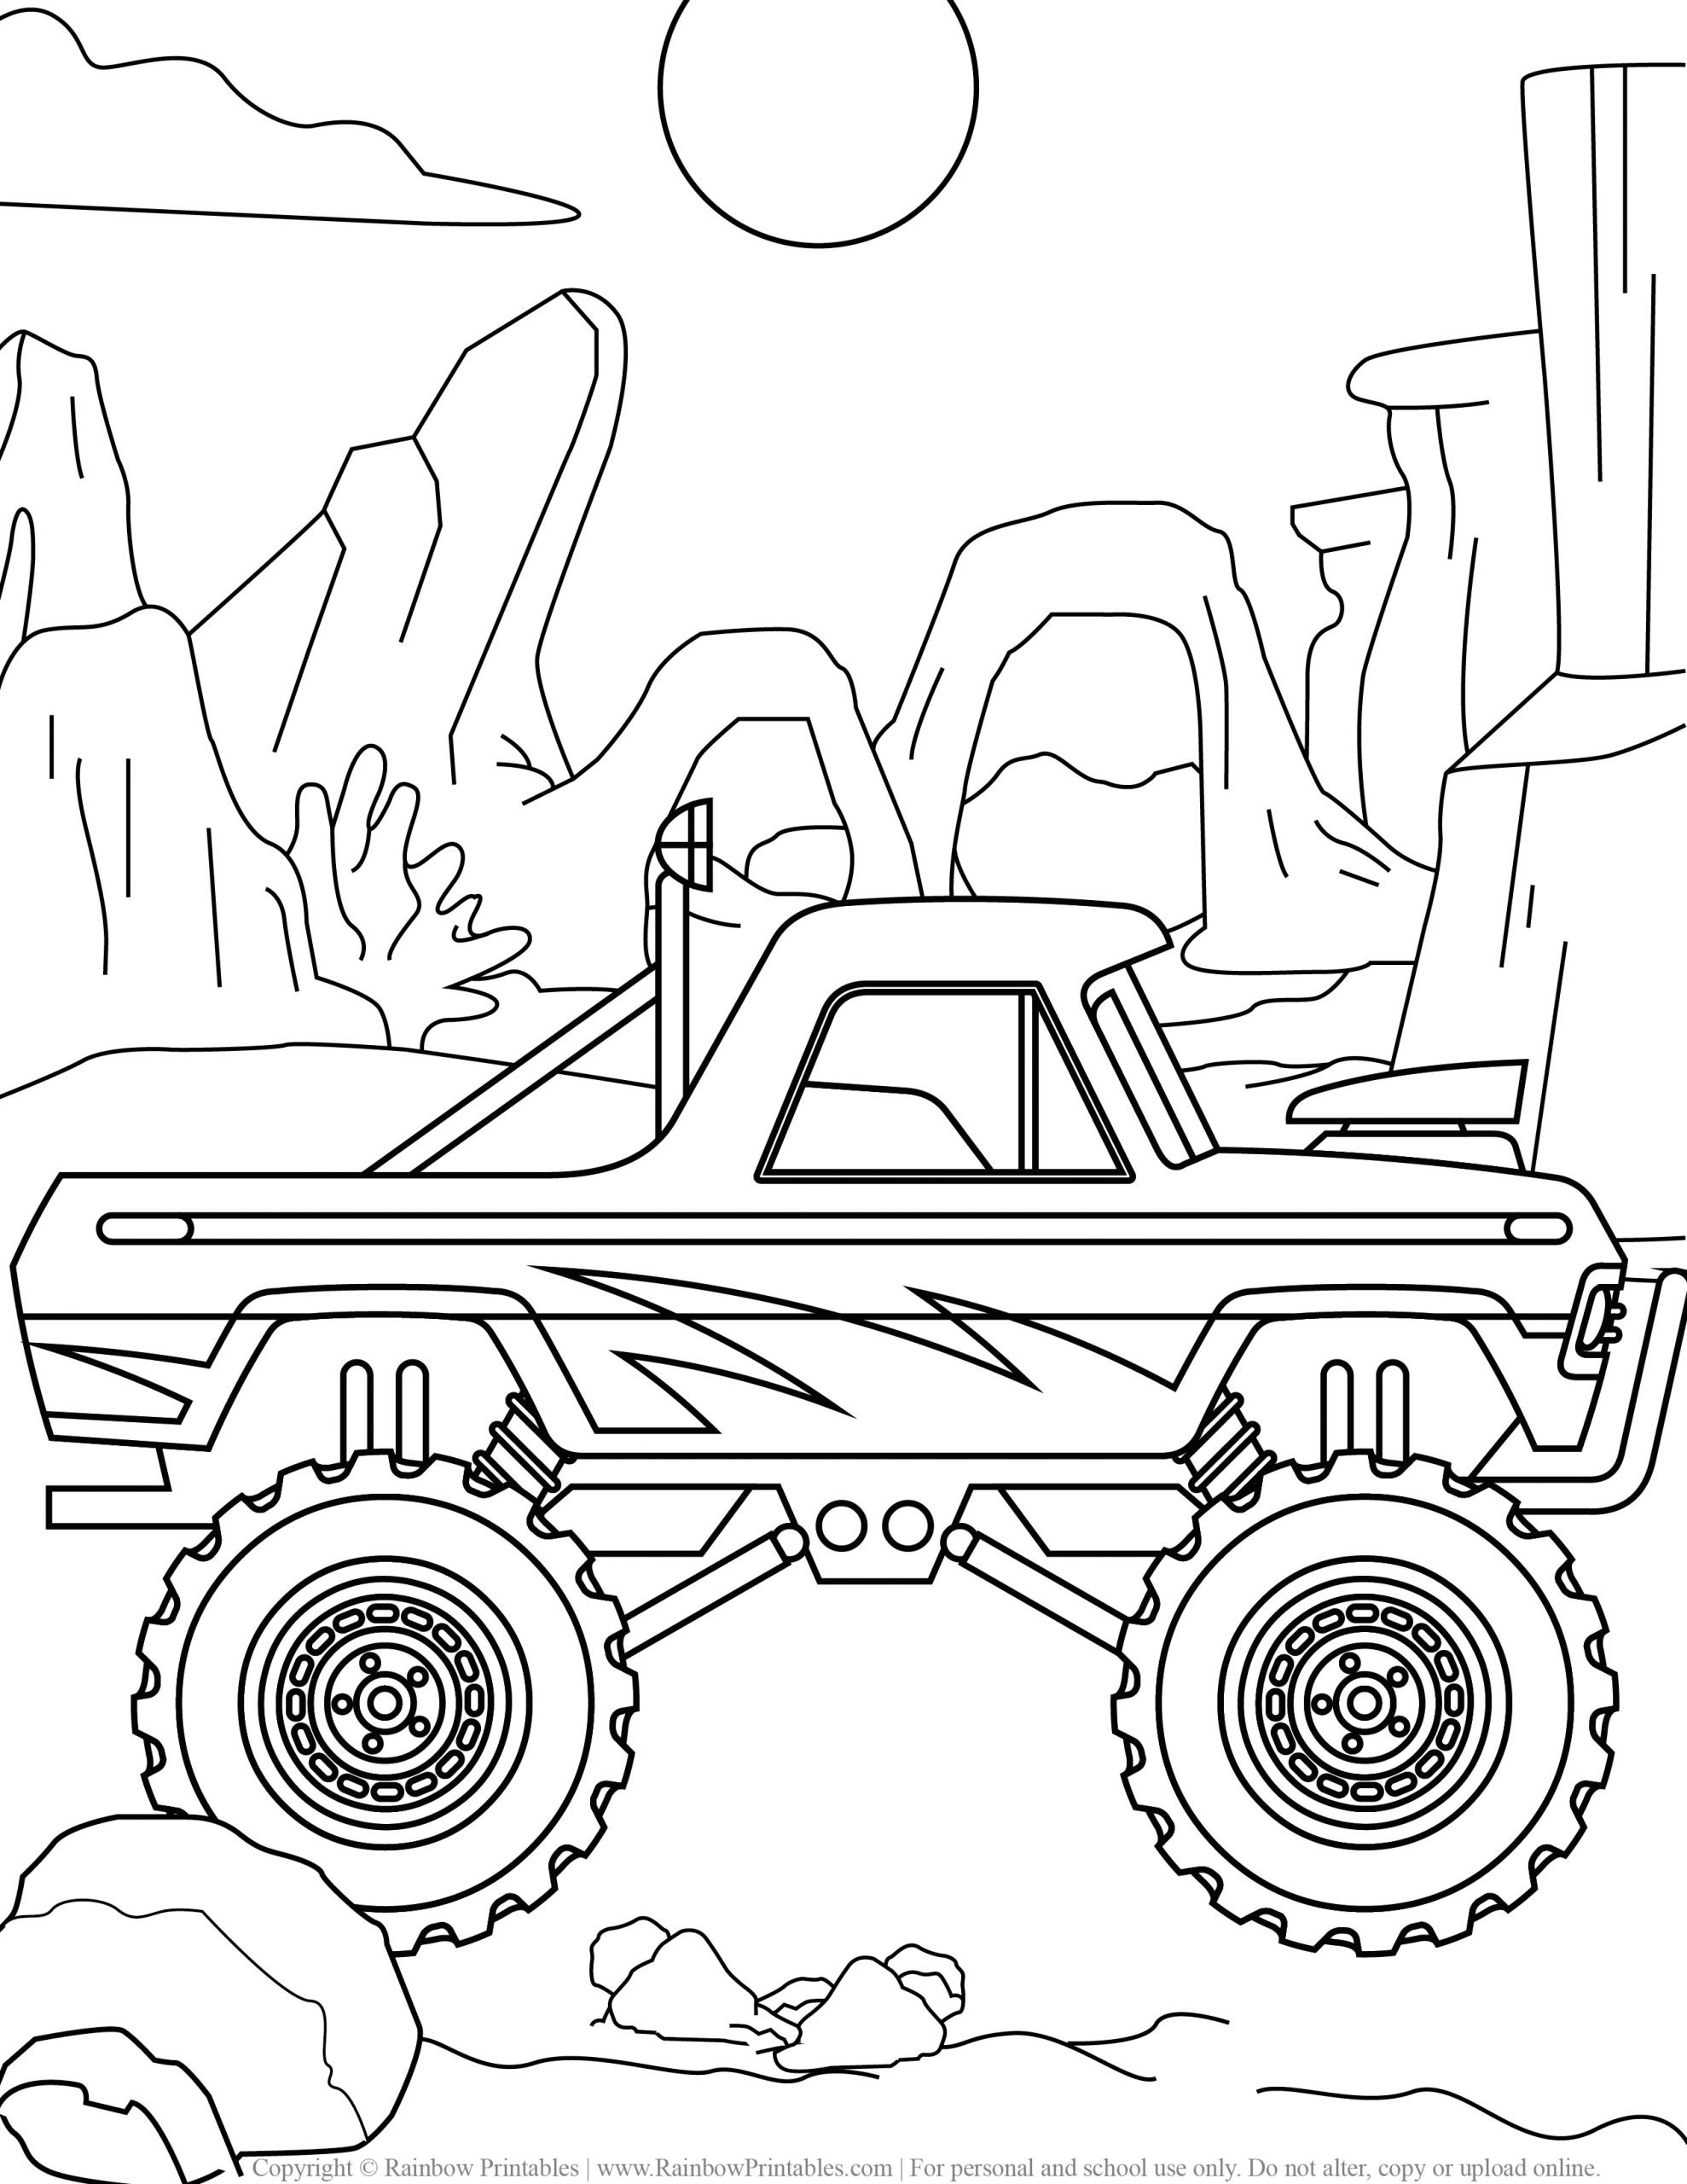 7 Free Monster Truck Coloring Pages For Kids Printable Download Rainbow Printables